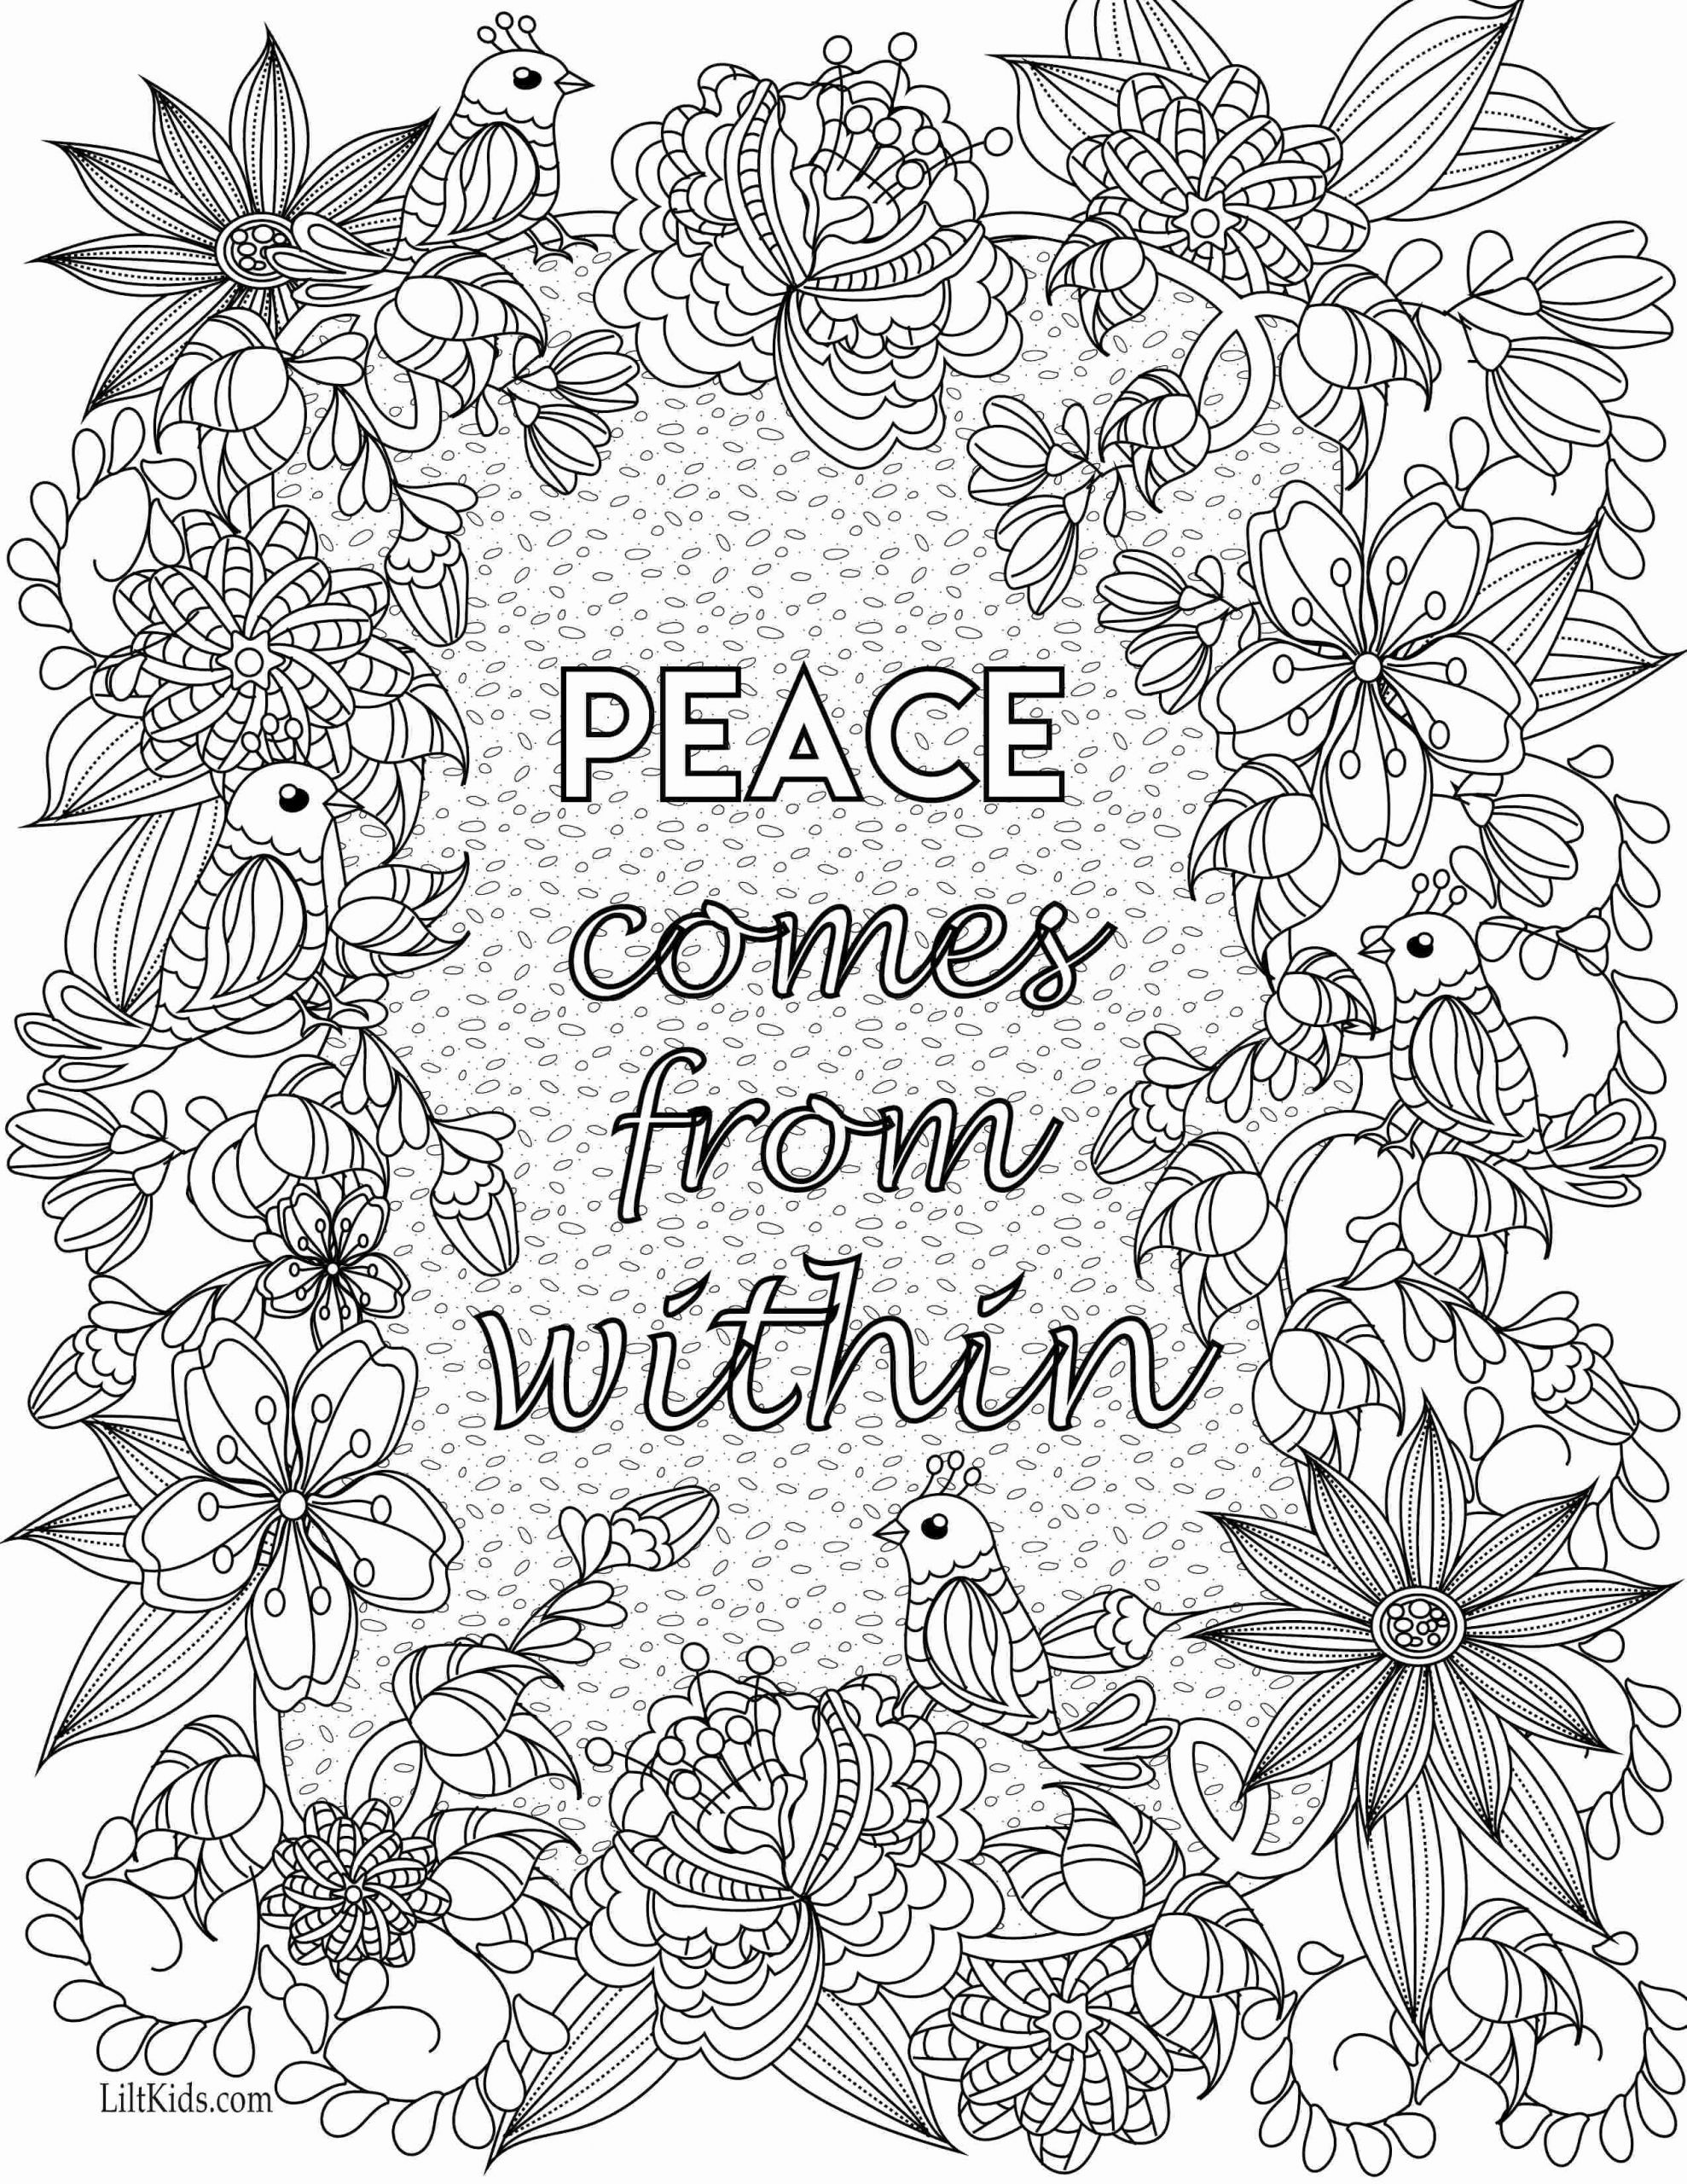 Free Printable Coloring Pages Adults Only : printable, coloring, pages, adults, Printable, Coloring, Pages, Adults, Cinebrique